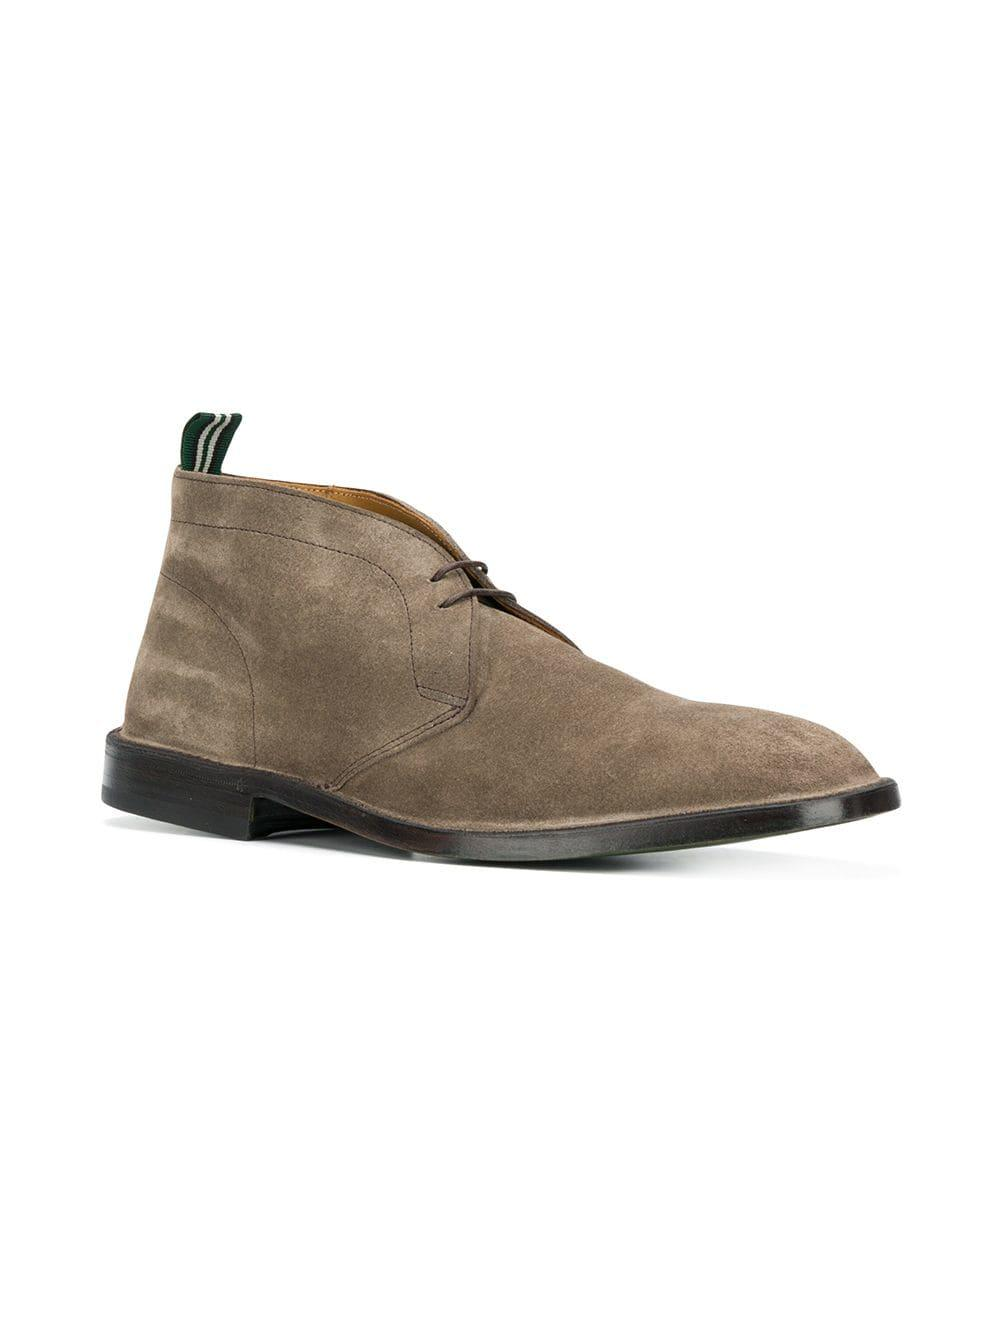 35f60defb4a3b Green George Lace-up Shoes in Brown for Men - Lyst